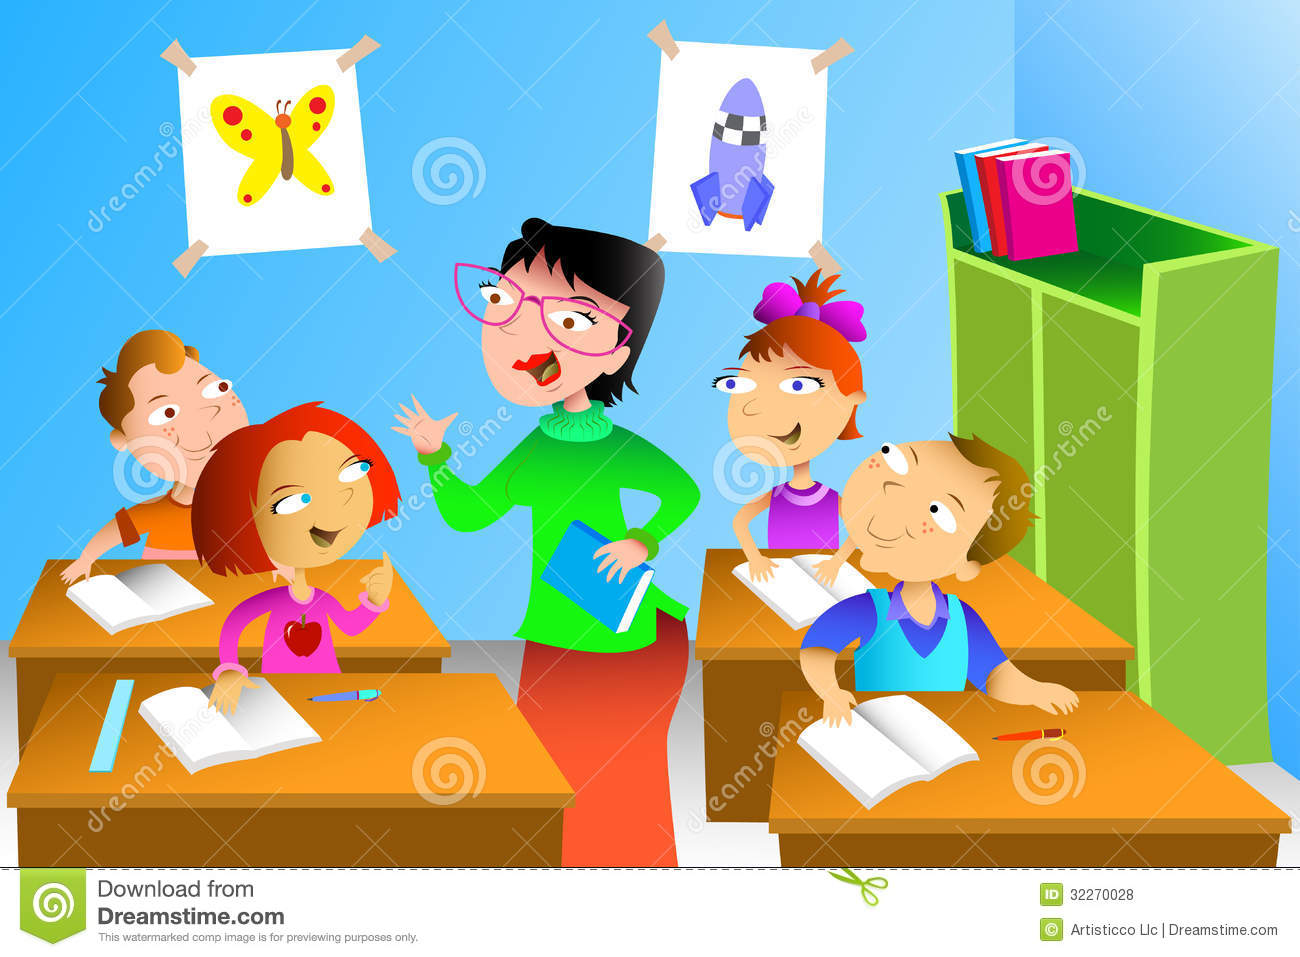 Child Care Floor Plans Teacher And Student In The Classroom Royalty Free Stock